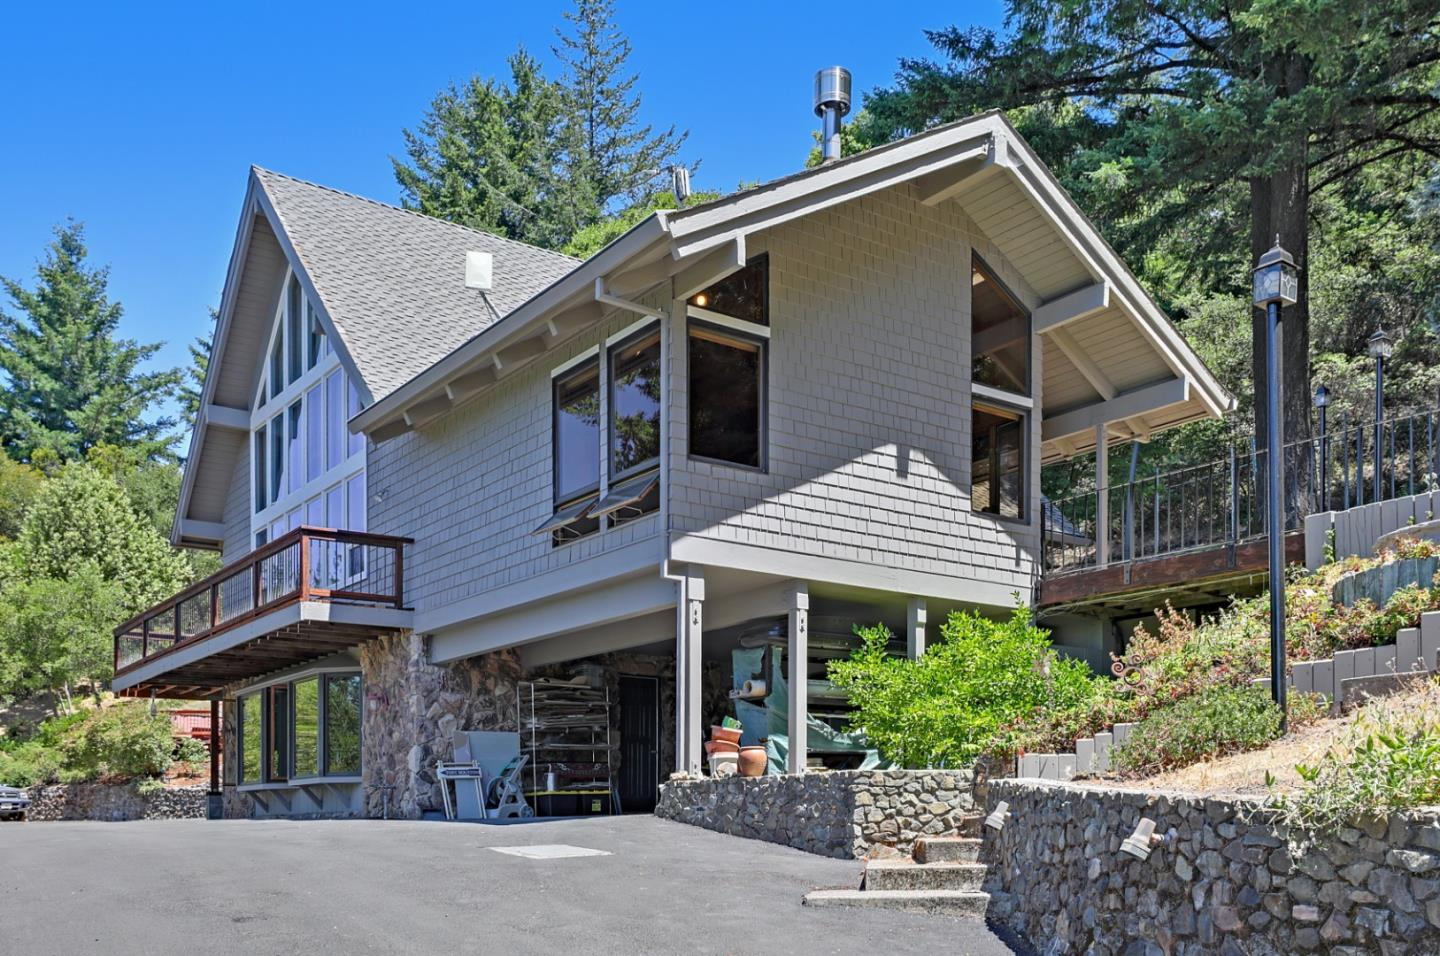 Highly sought after, private property on 2.78 acres. 3 BR/2.5 BA game/hobby/rental room with private entry, just 9 miles from downtown Saratoga, 14 miles from downtown Los Gatos. Main floor bedrooms and both bathrooms feature heated floors. Hardwood floors throughout. Enjoy nearby city life with exceptional restaurants, live music, and shops, then retreat to your serene and tranquil haven for a soak in the spa under starry skies. Close access to world class hiking, mountain biking, fresh air, and incredible views! Open floor plan includes floor to ceiling windows, a huge deck perfect for entertaining, or just enjoying a private family dinner watching the sunset. Zoning allows horses and chickens. Opportunity to grow vegetables/raise chickens. Award winning Los Gatos, and Saratoga schools. 2 car garage with workshop and 220V to handle the most power hungry tools you may have. Workshop has its own views. Located near beautiful Castle Rock State Park. Lots of upgrades, and move in ready!